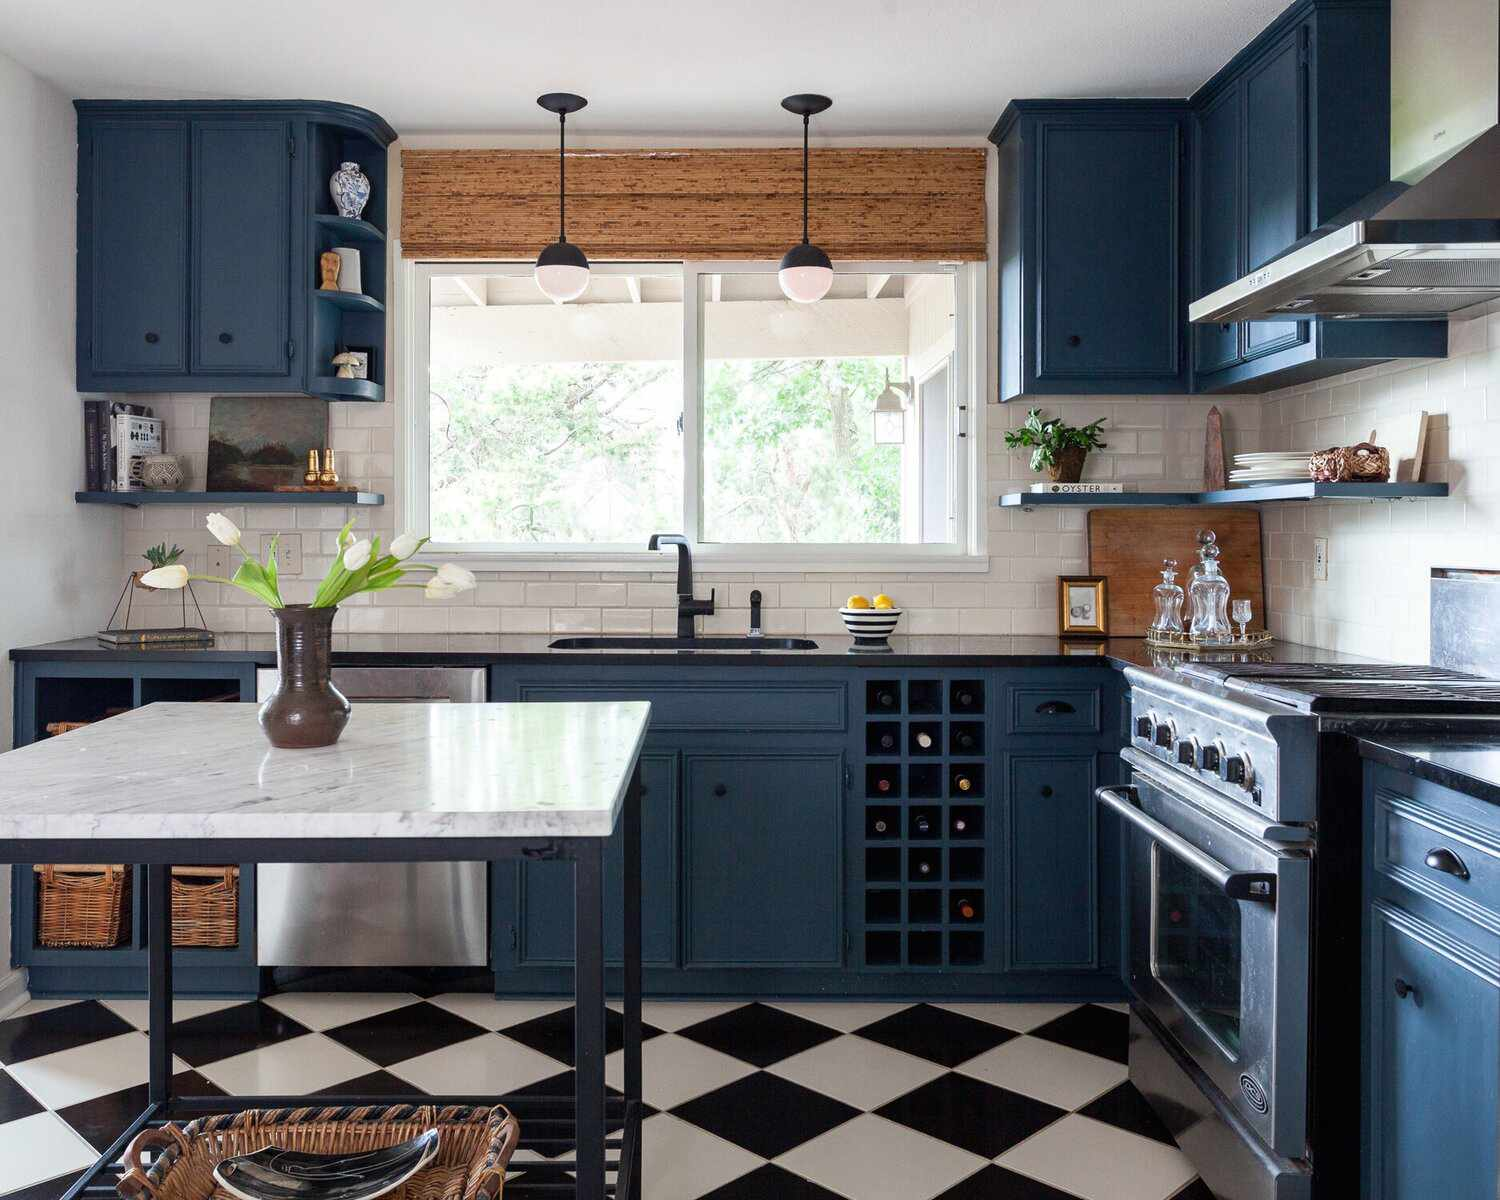 A kitchen with navy cabinets and a black-and-white tiled floor